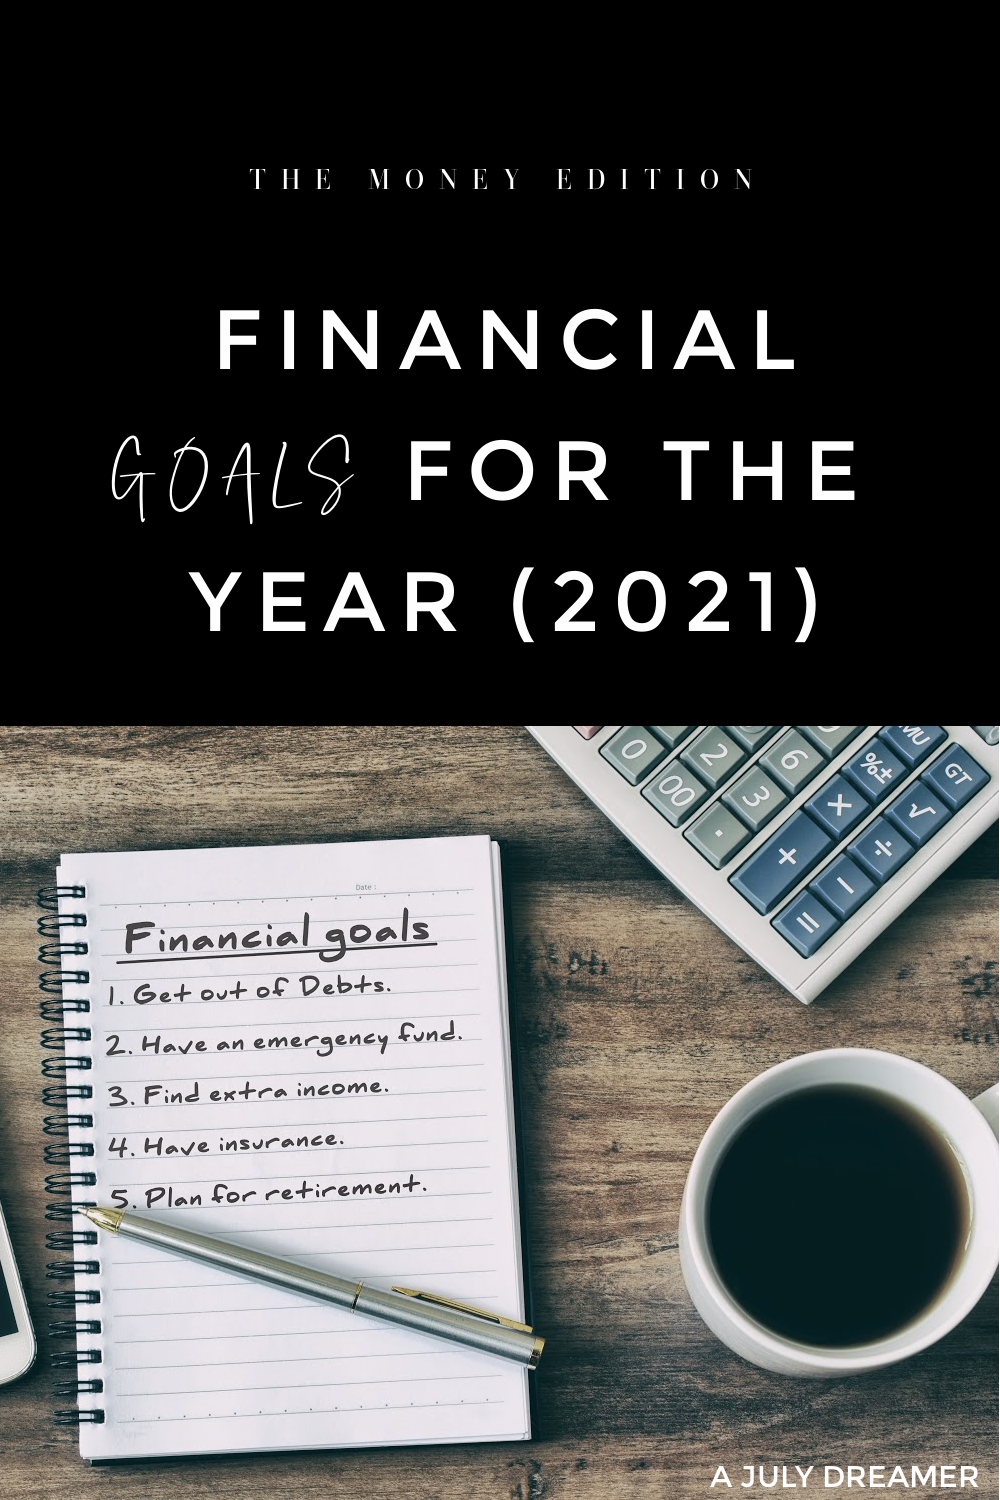 As we are now half way through the year, it makes sense to look over the financial goals for the year that I set at the beginning of the year. There are so many wonderful things I wish to accomplish this year and if 2020 has taught us anything its to live today like it's your last.